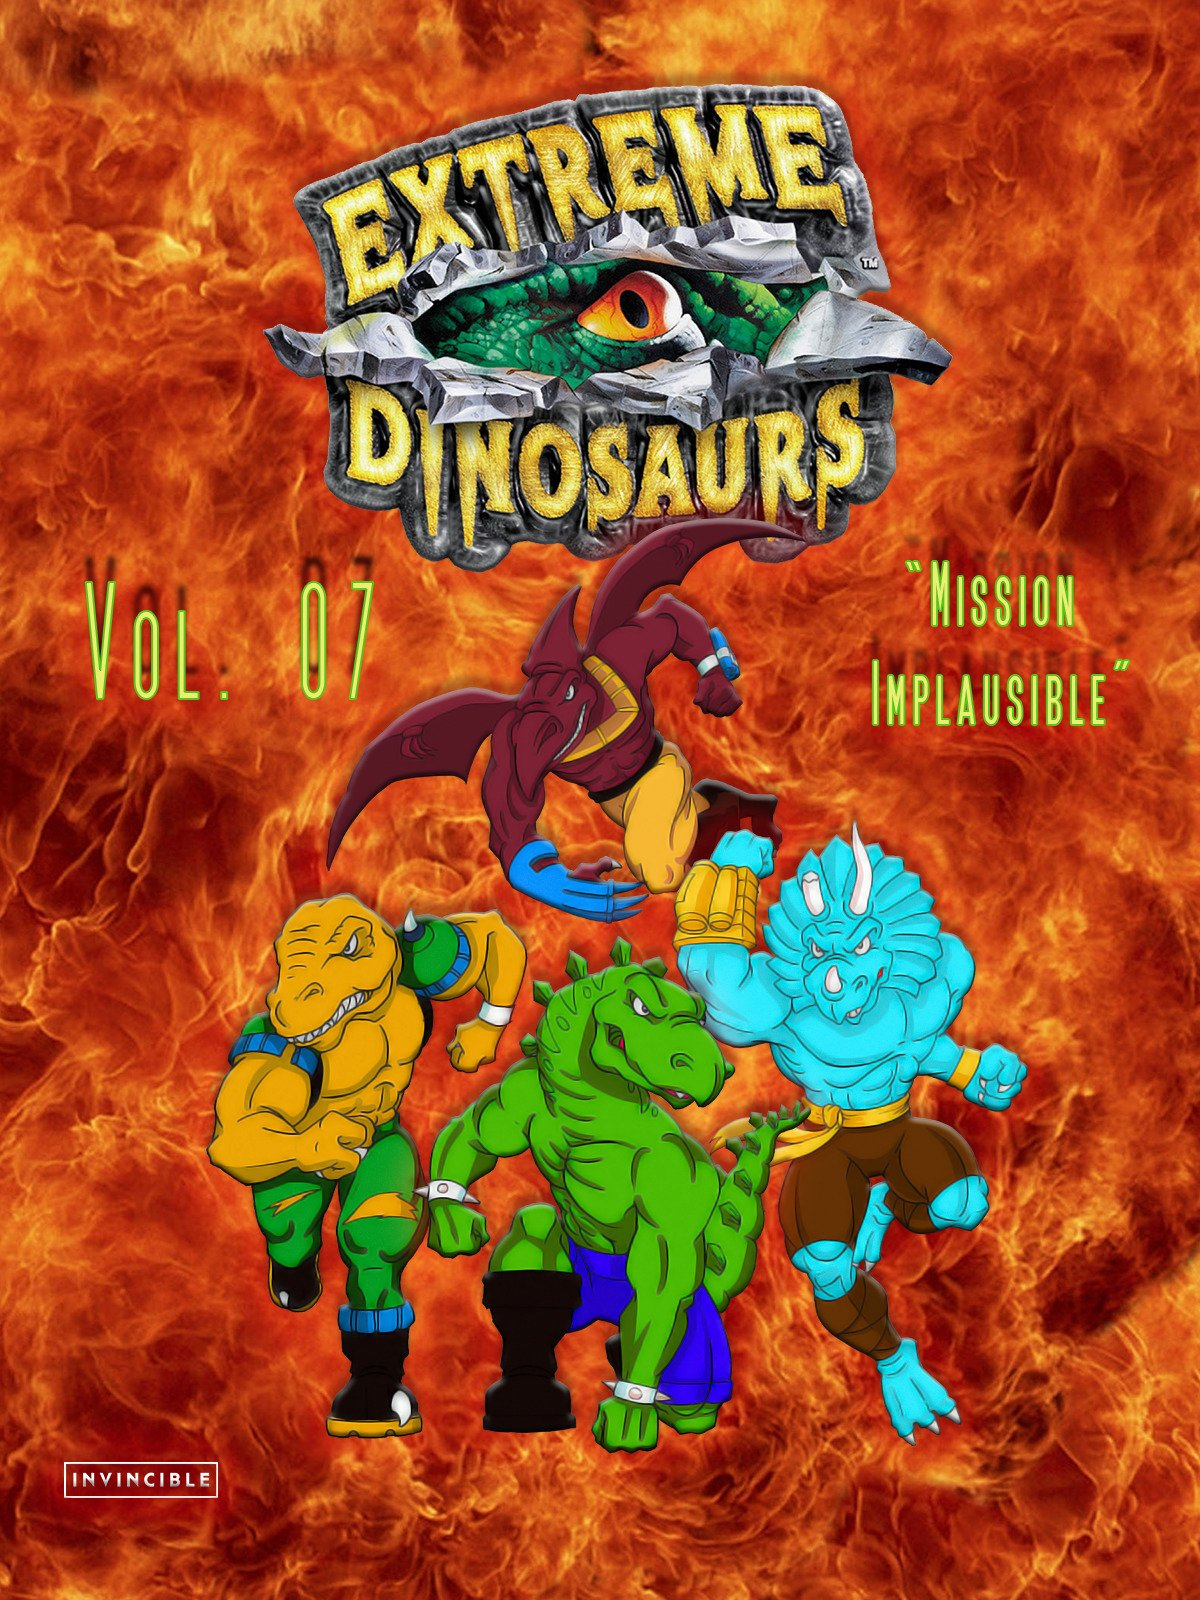 Extreme Dinosaurs Vol. 07Mission Implausible